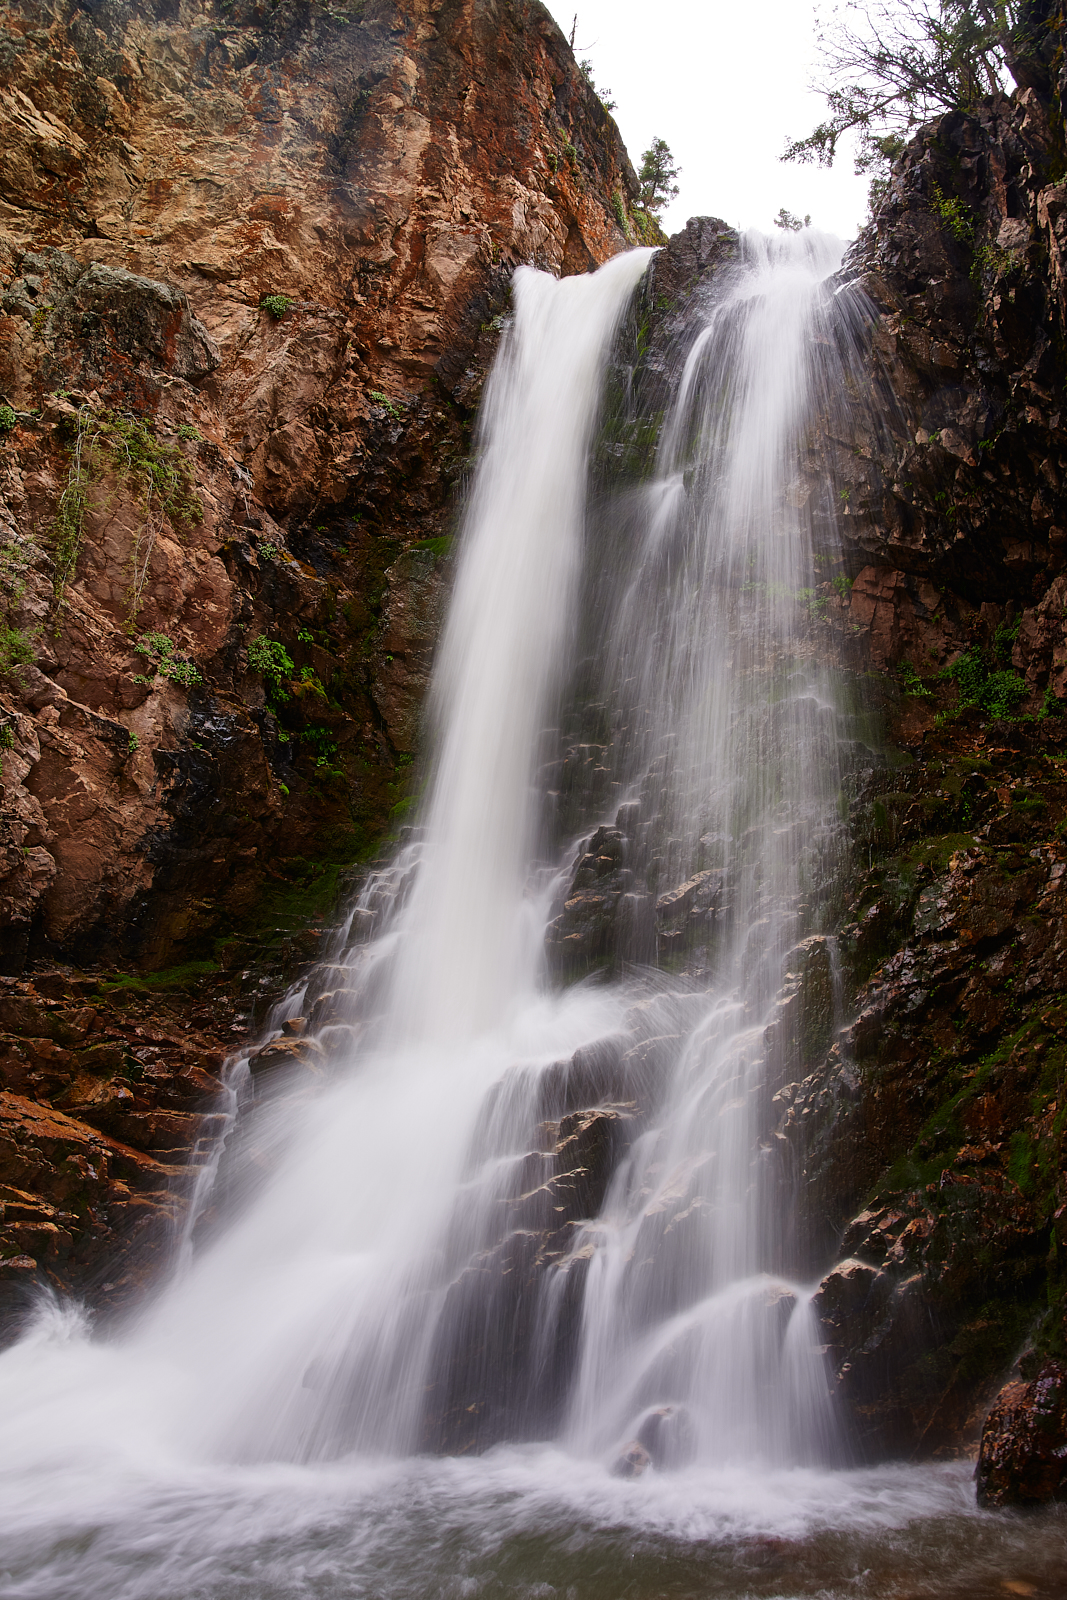 Bullion Falls Marysvale, Utah - Such an amazing hike in to see the fall! highly recommend if you're traveling through.